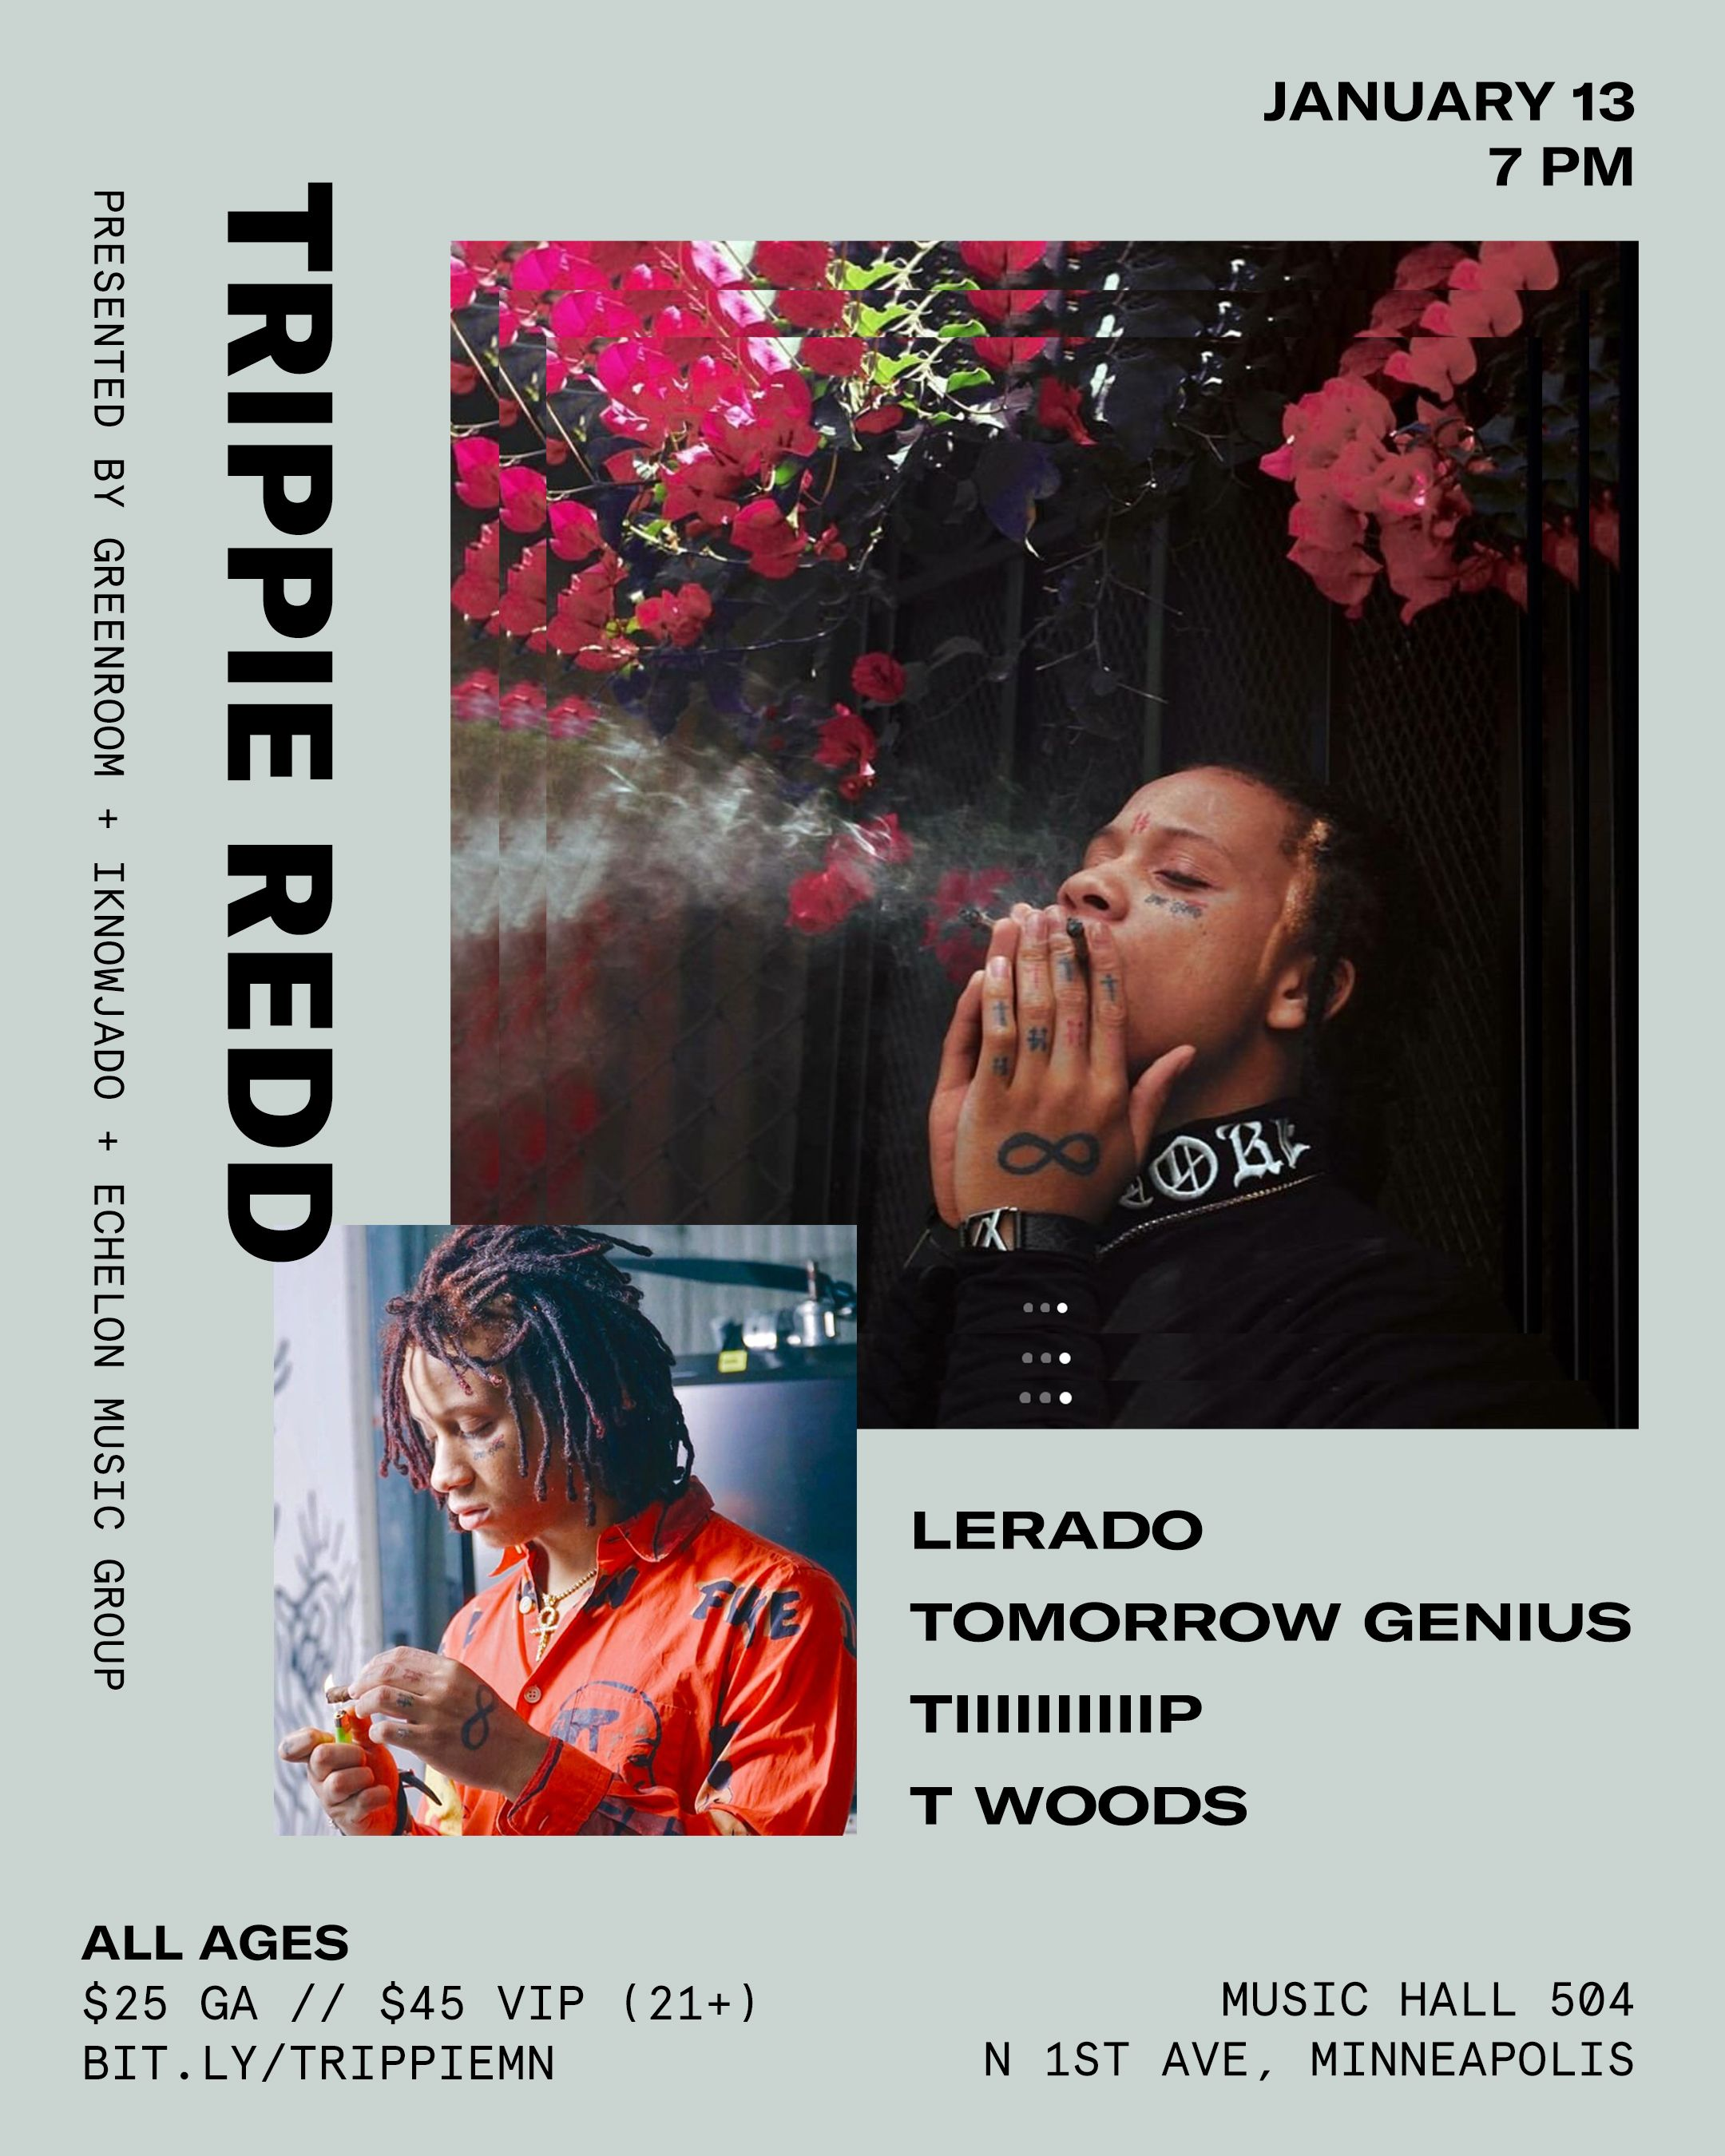 Design For Trippie Redd Poster By Lindsay St Clair Layoutdesign